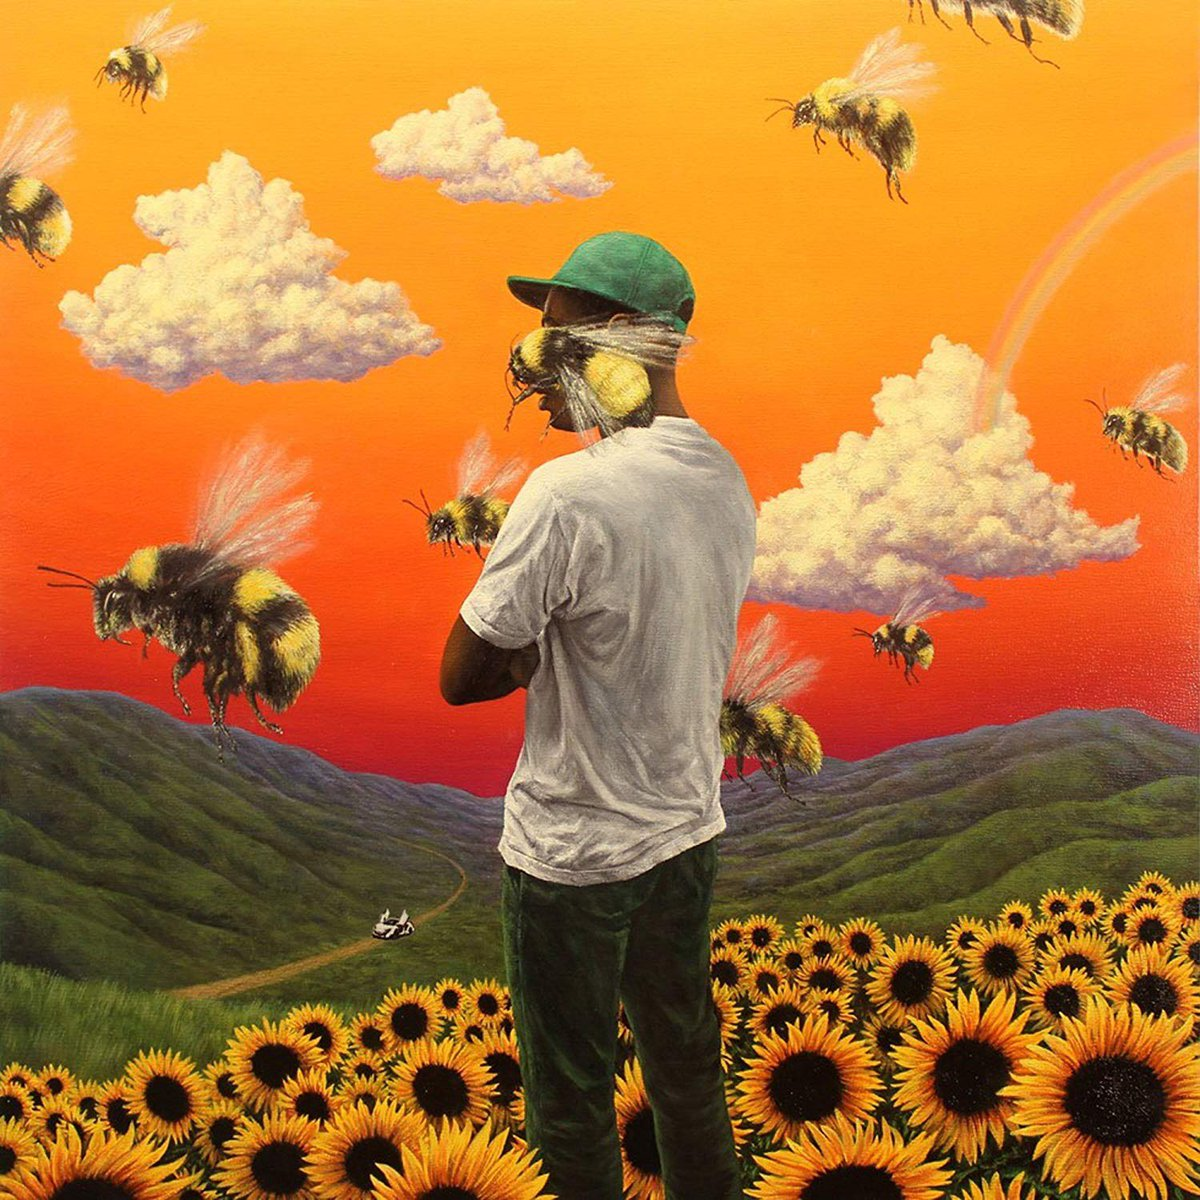 Today marks the 2 year anniversary of @tylerthecreator's Flower Boy.🌻  What's your favorite moment of this beautiful, incredibly well-crafted album?  Binge all 14 episodes of our Flower Boy analysis now on @Spotify. https://spoti.fi/32D4Bhj